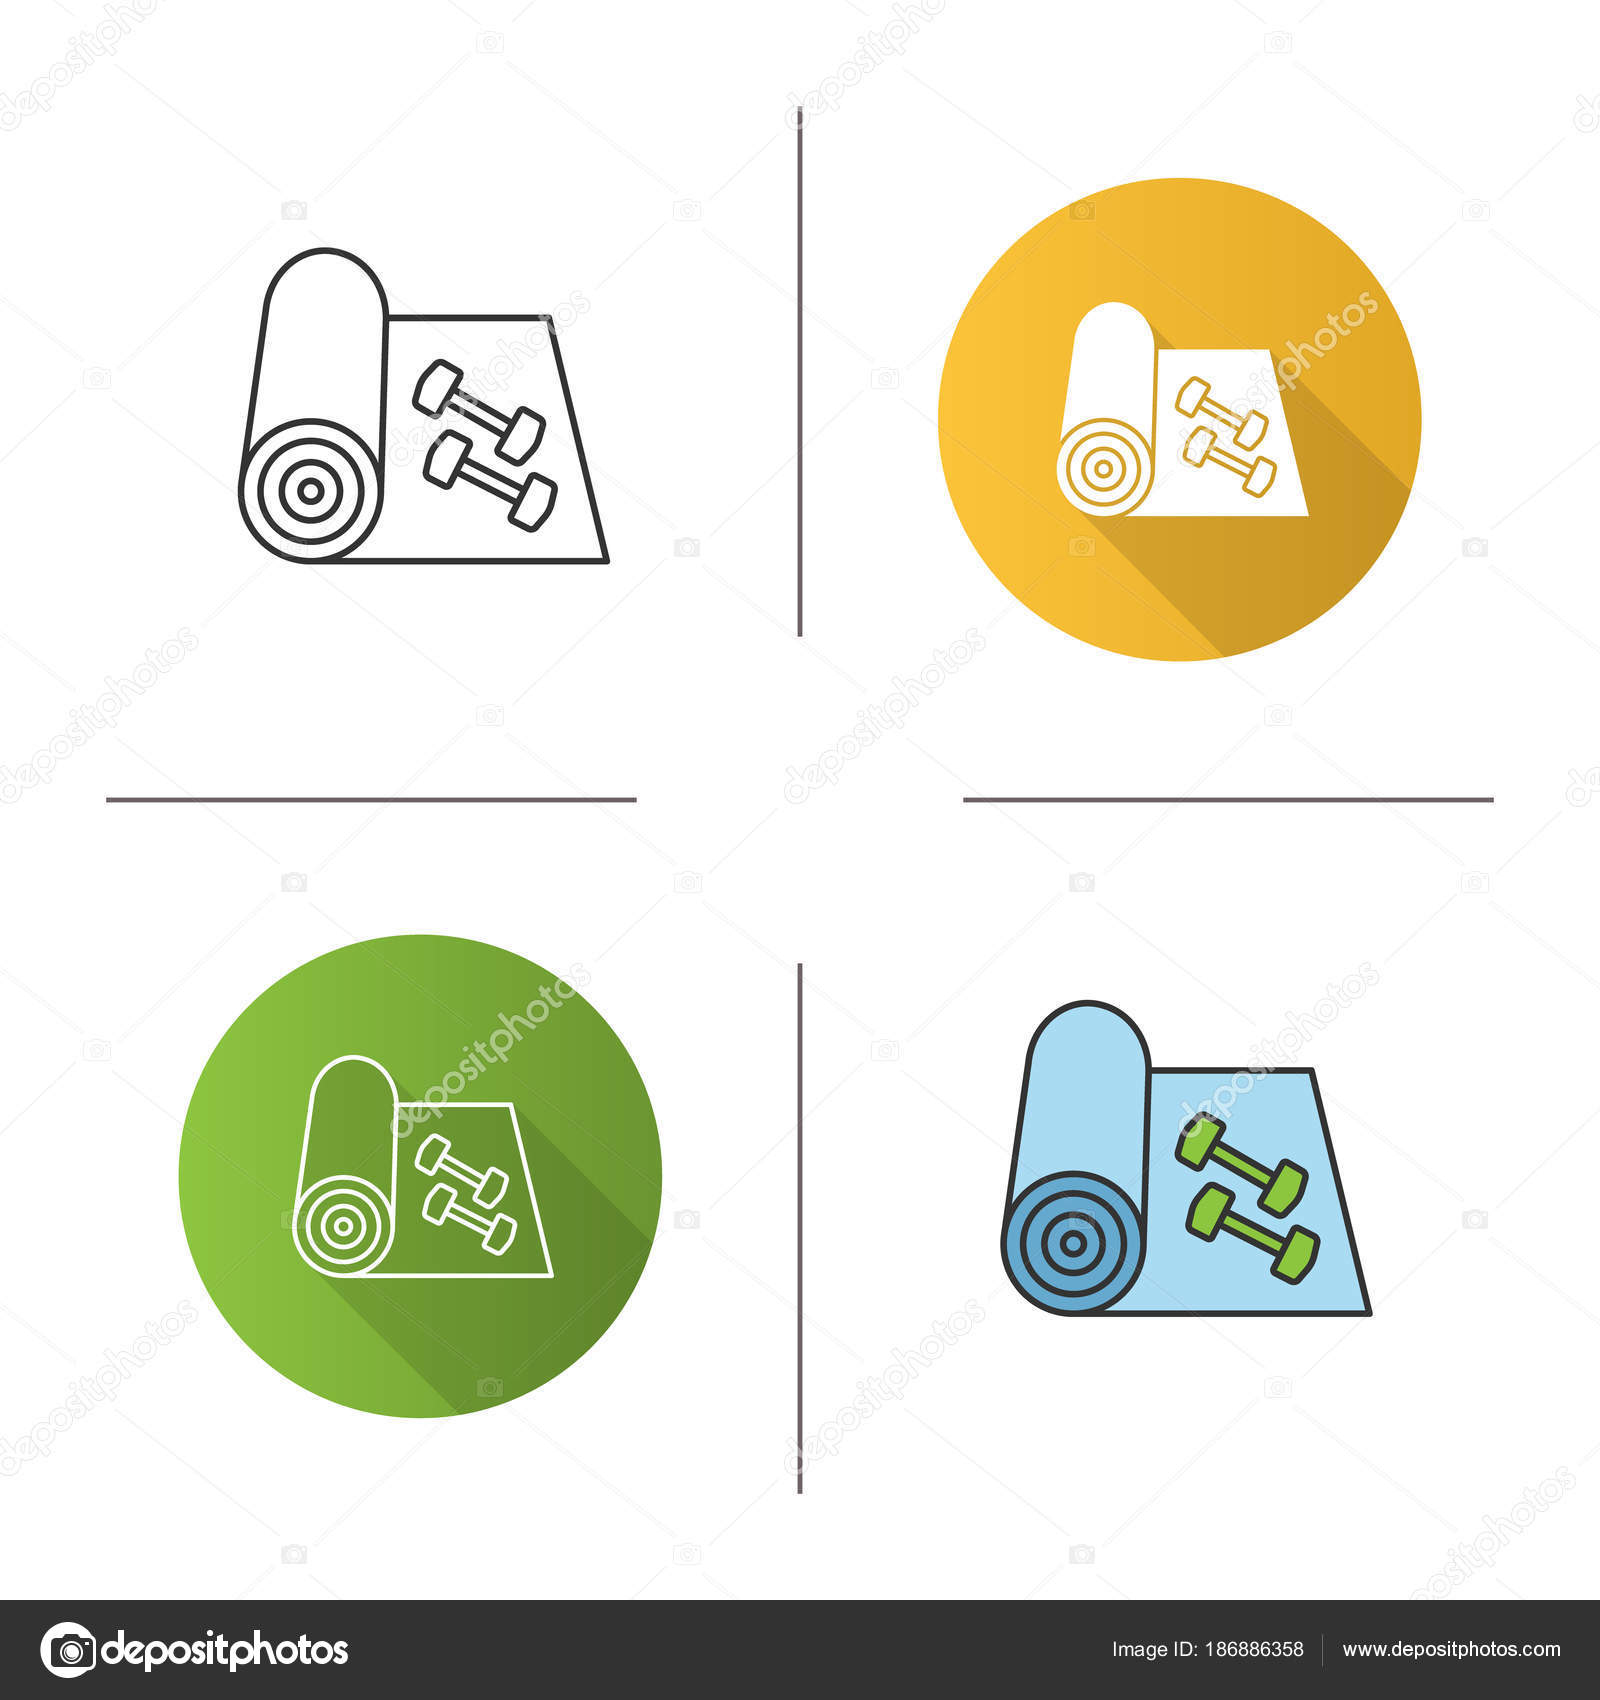 Training Mat Dumbbells Icon Flat Design Linear Color Styles Yoga Stock Vector